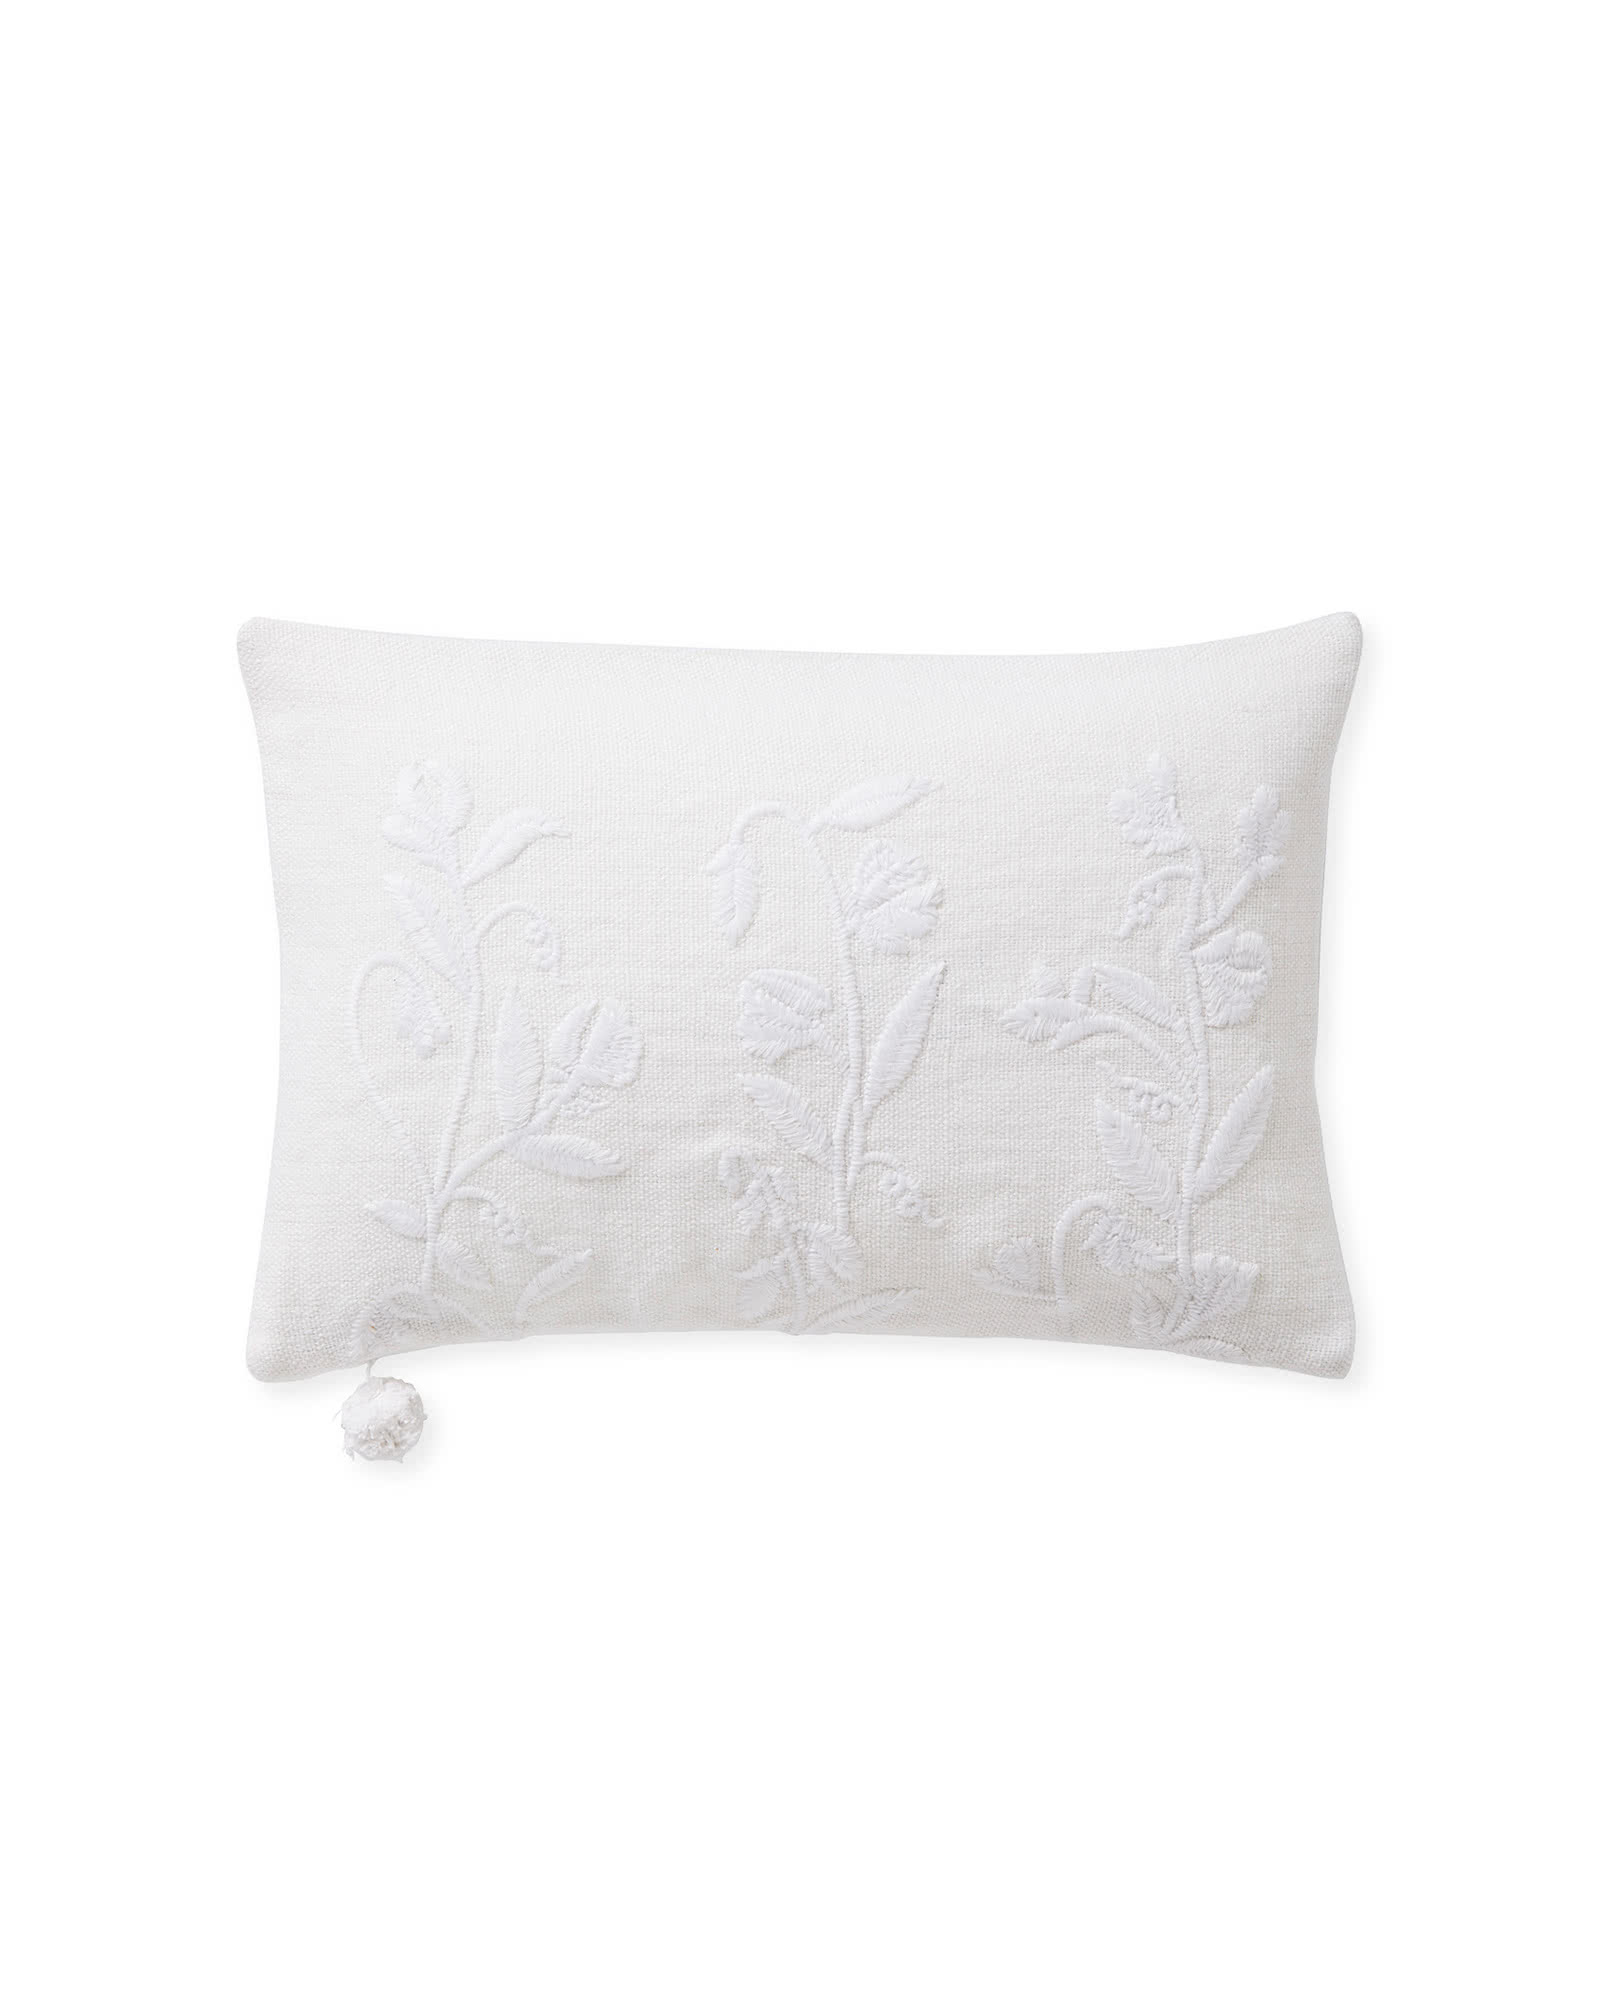 Sweet Pea Pillow Cover,